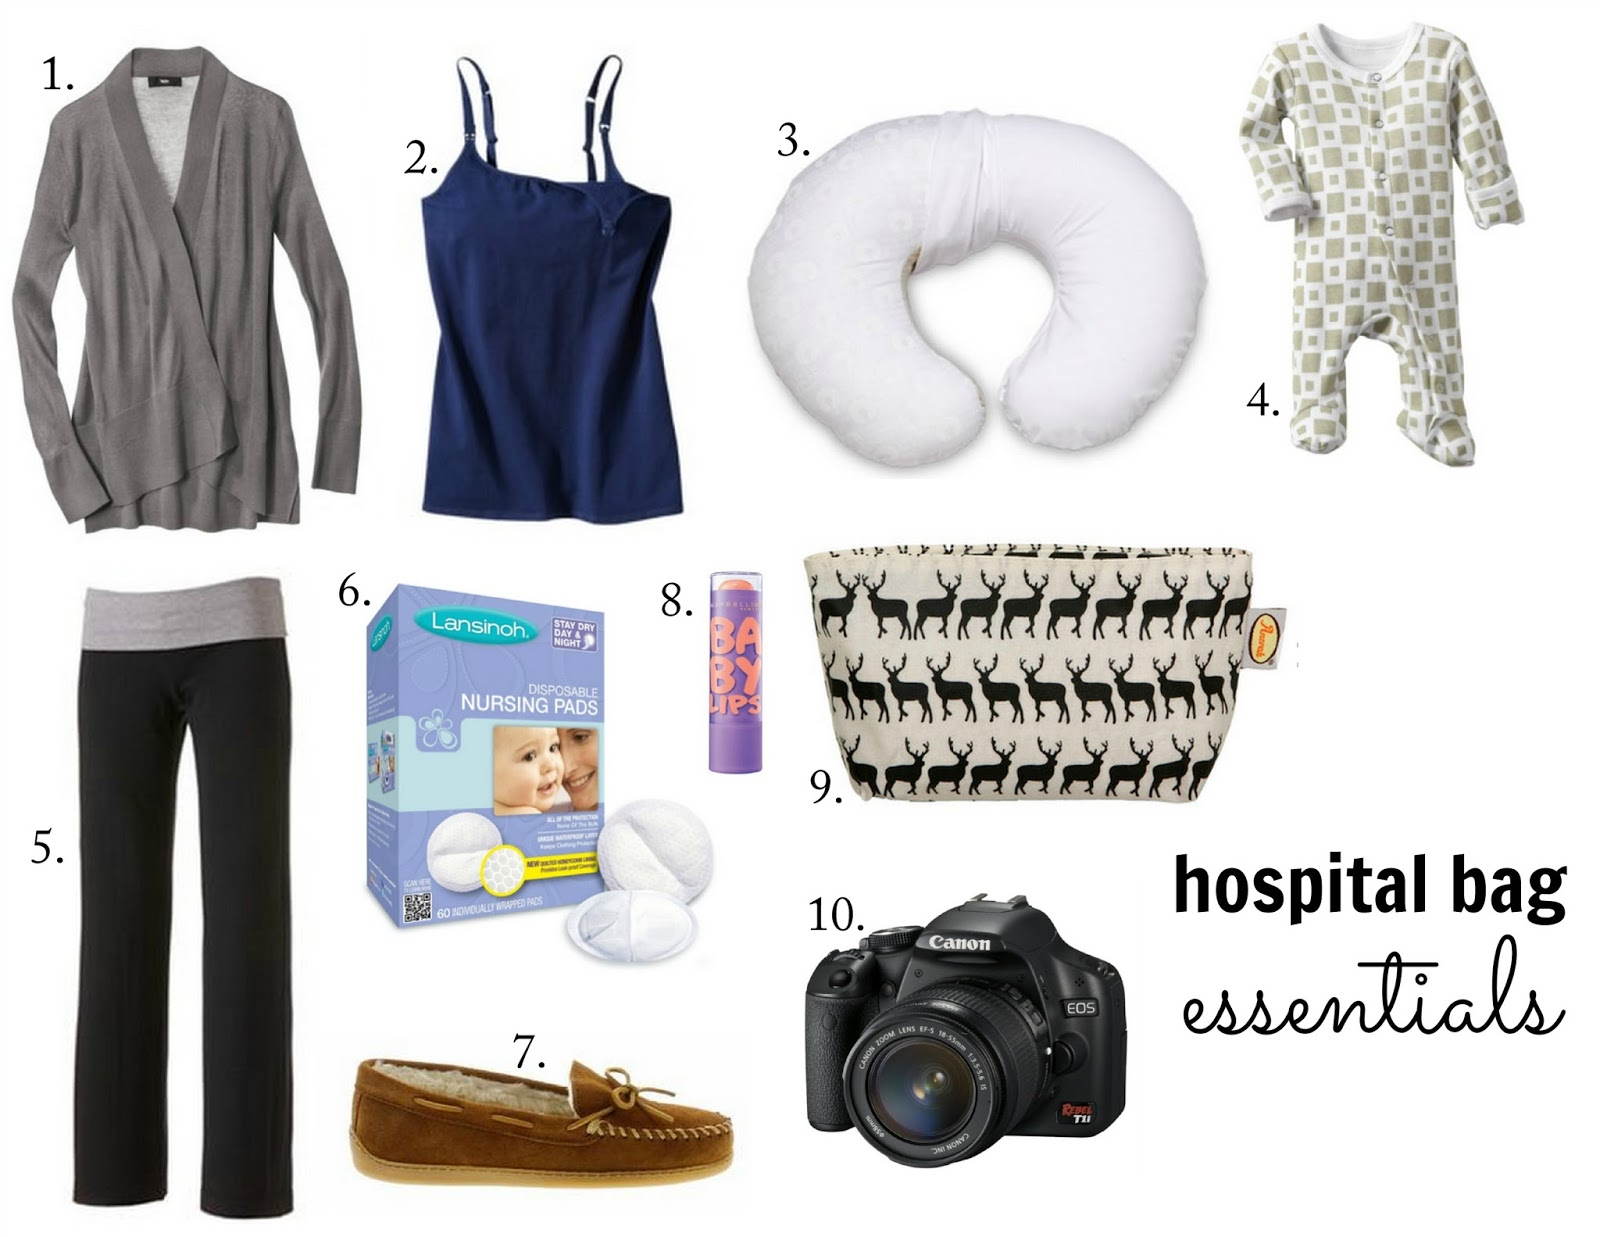 camp patton labor and delivery hospital bag essentials